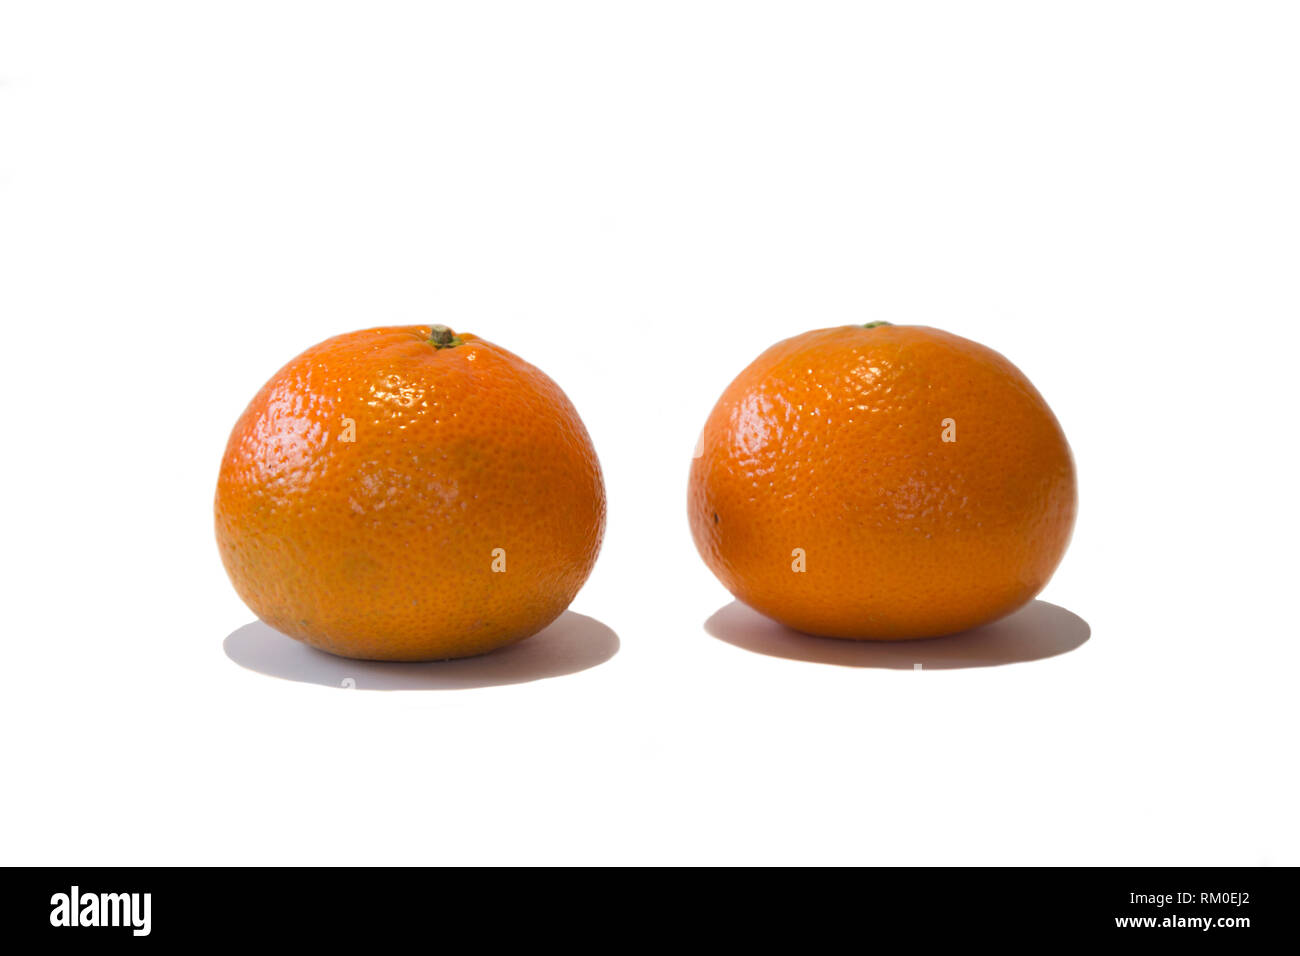 Two small oranges with their skin on against a white background - Stock Image